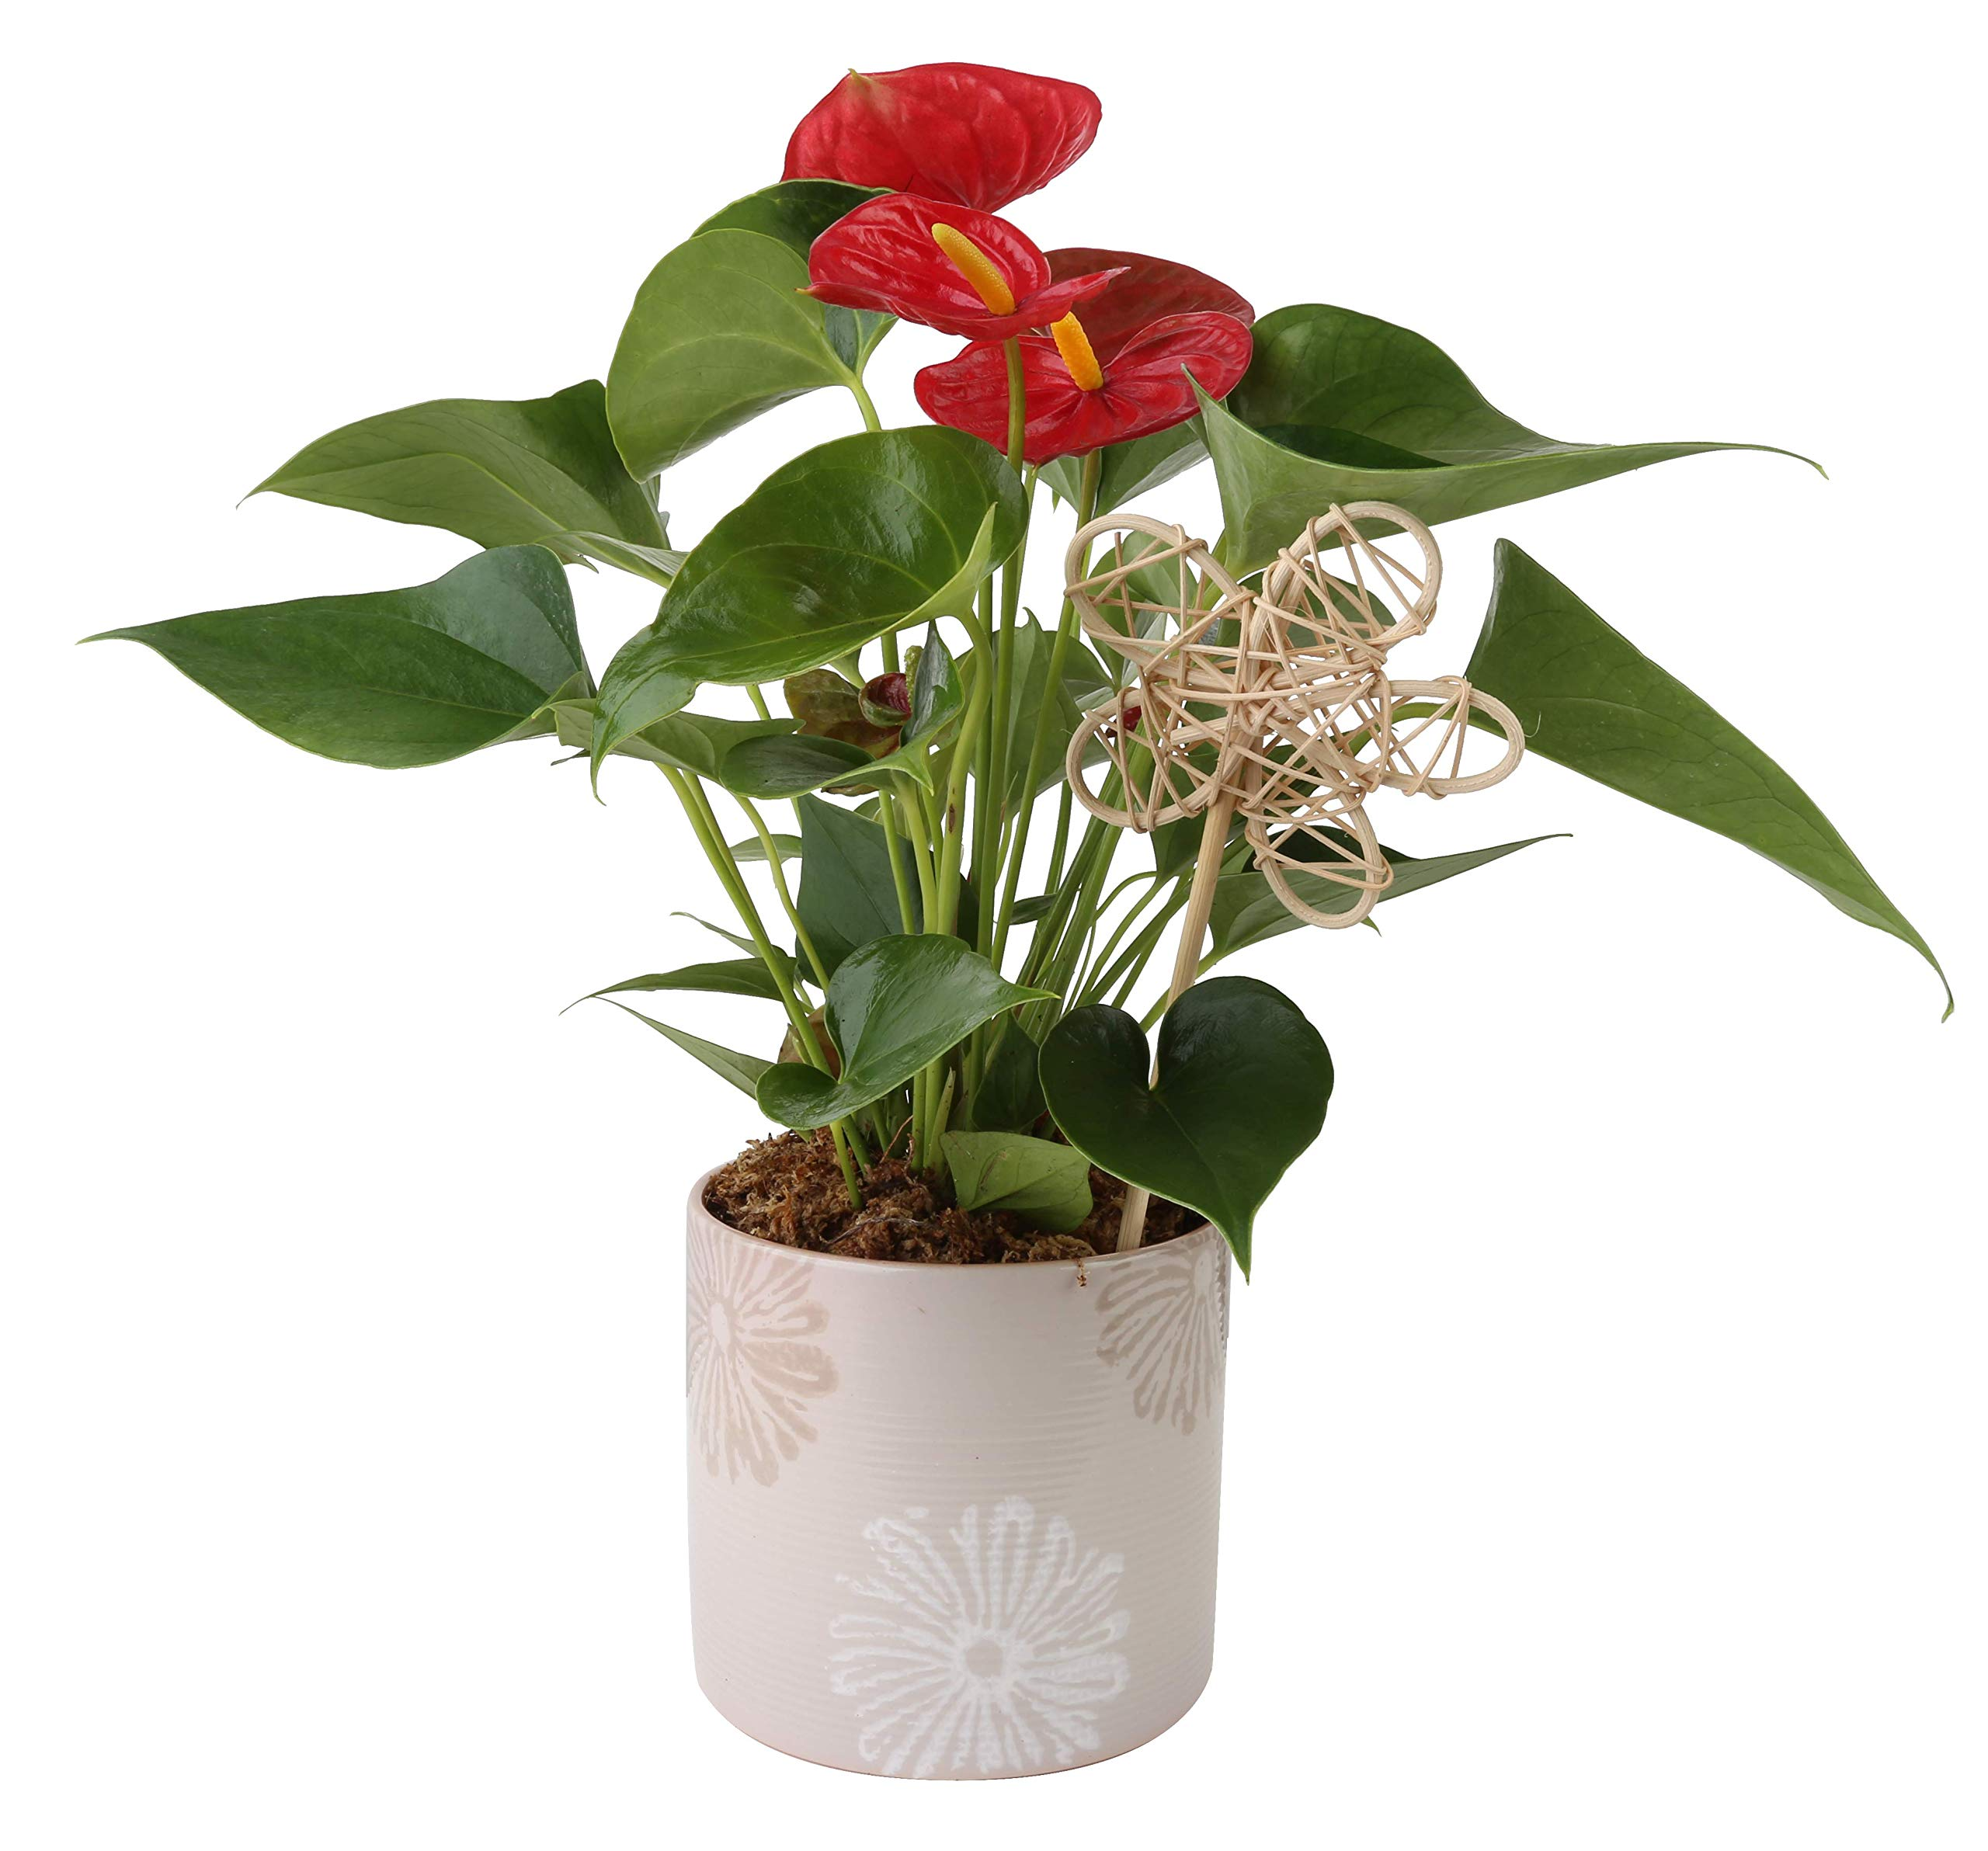 Costa Farms Live Anthurium Indoor Plant in Premium Ceramic, 12-Inches Tall, Great as Gift by Costa Farms